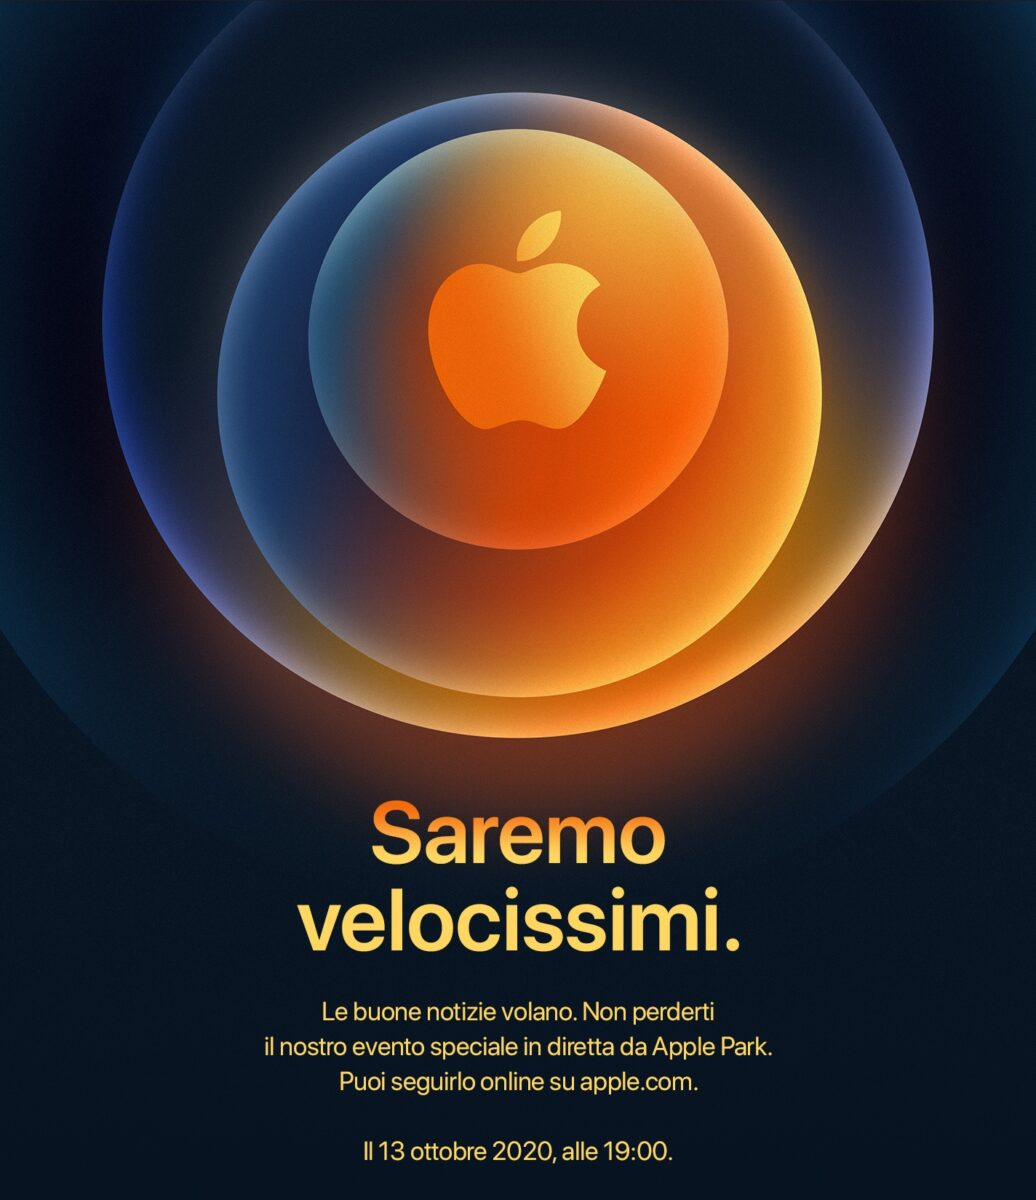 E' un AirTag quello che si vede nell'invito all'evento Apple?